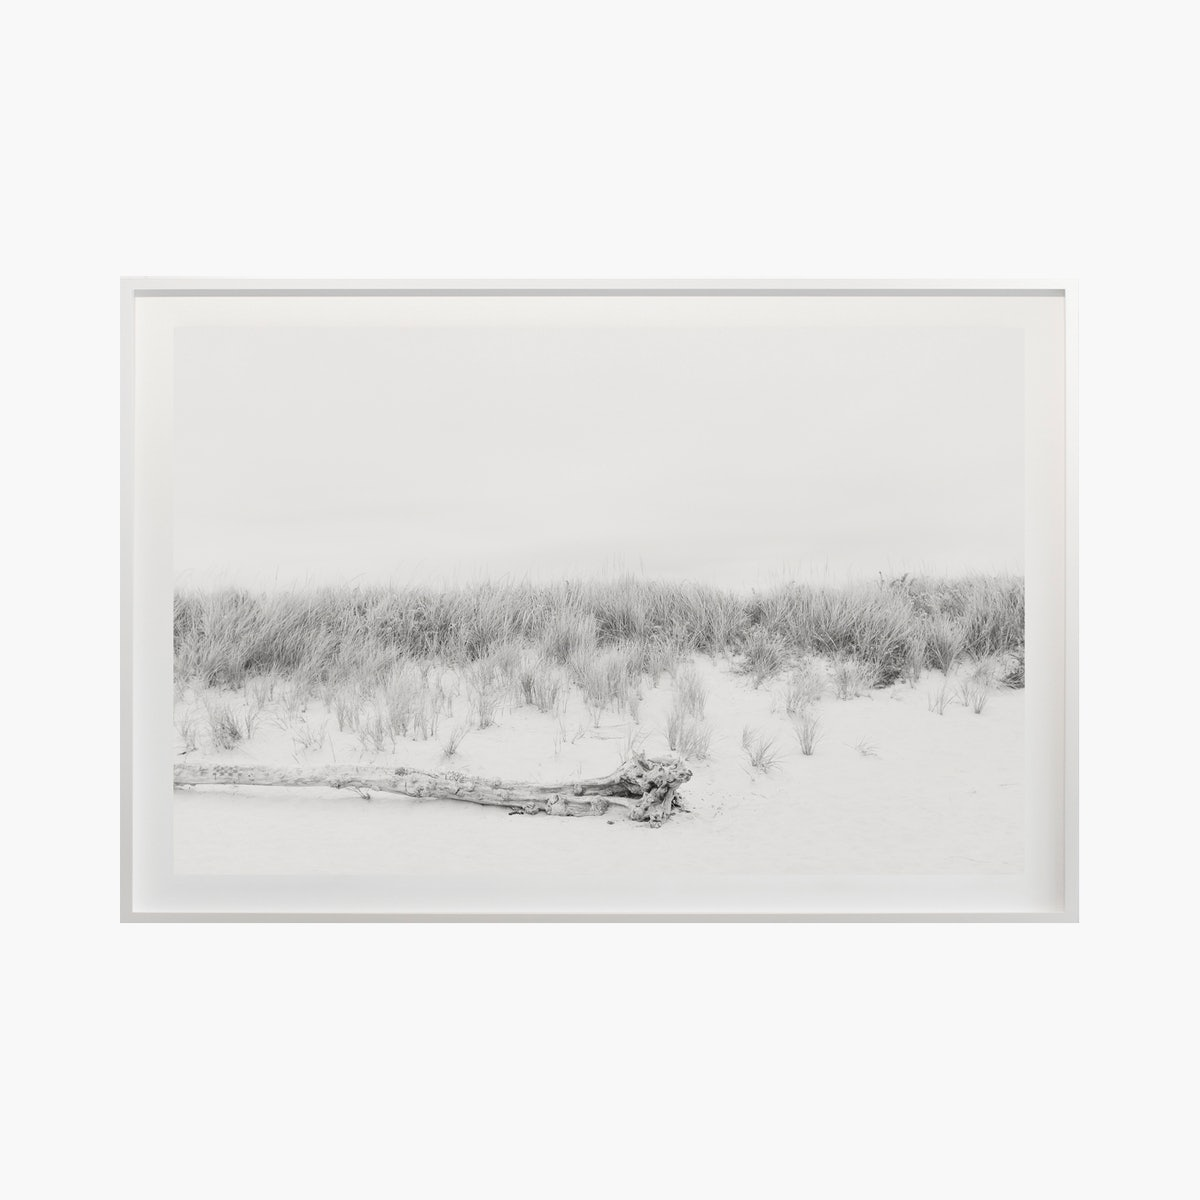 """Dunes No. 1420"" by Cas Friese"